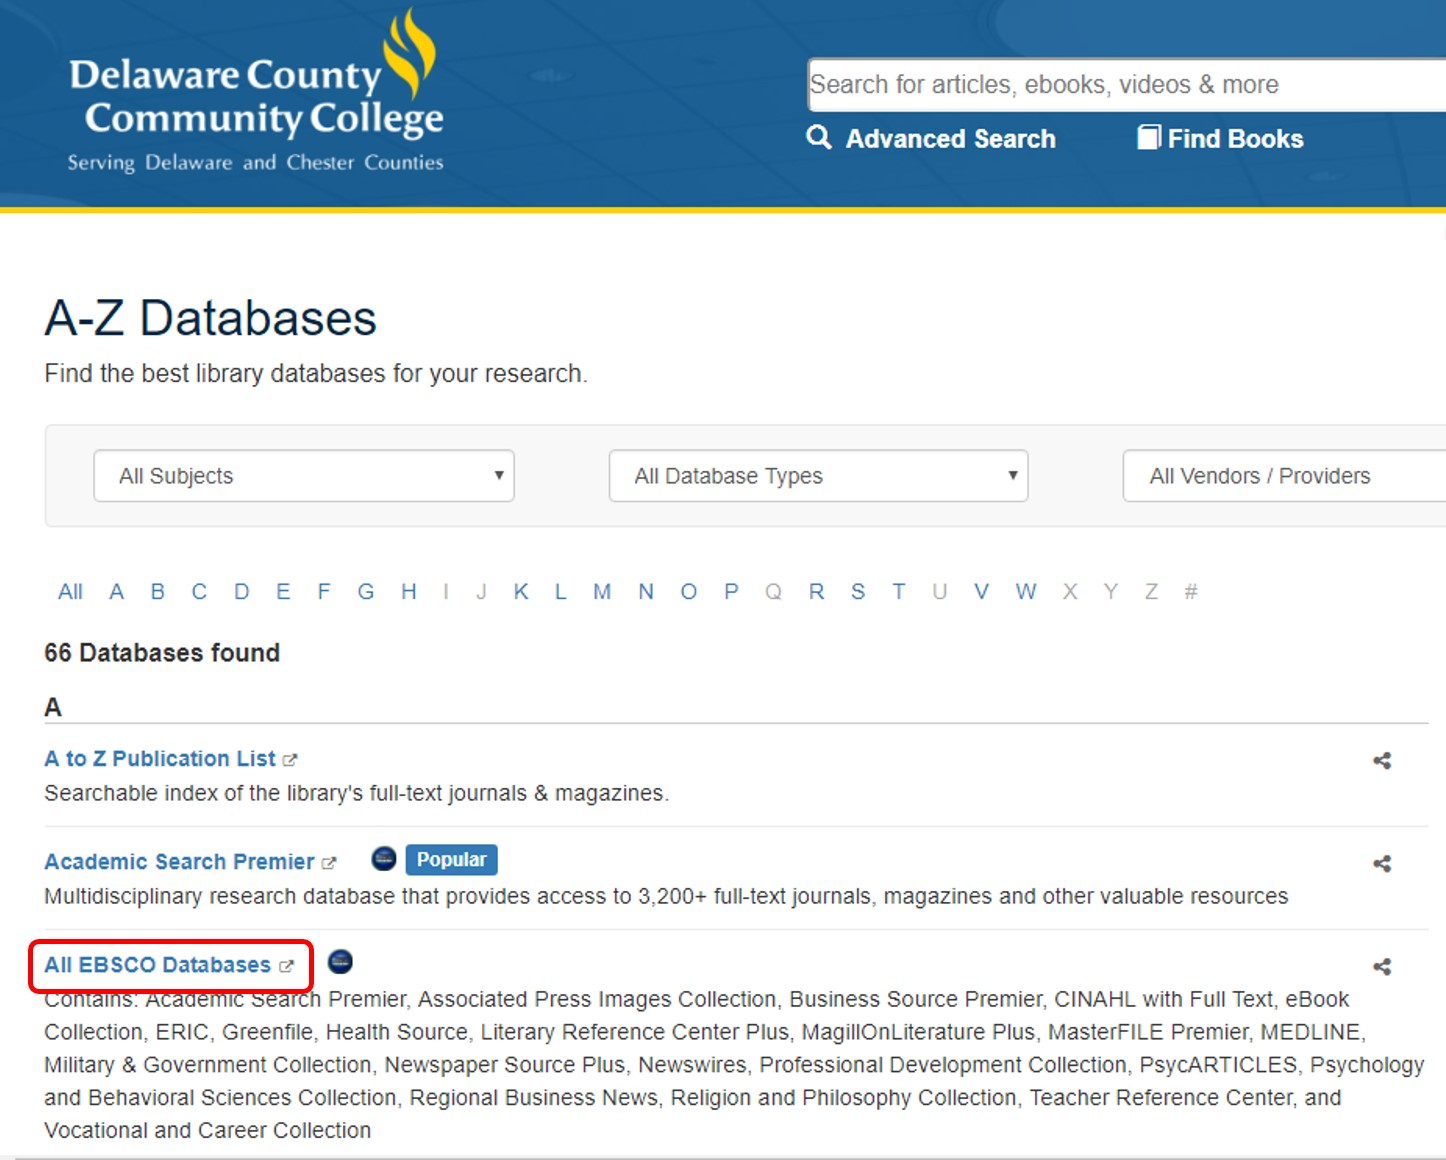 All EBSCO Databases link in the All Databases list.